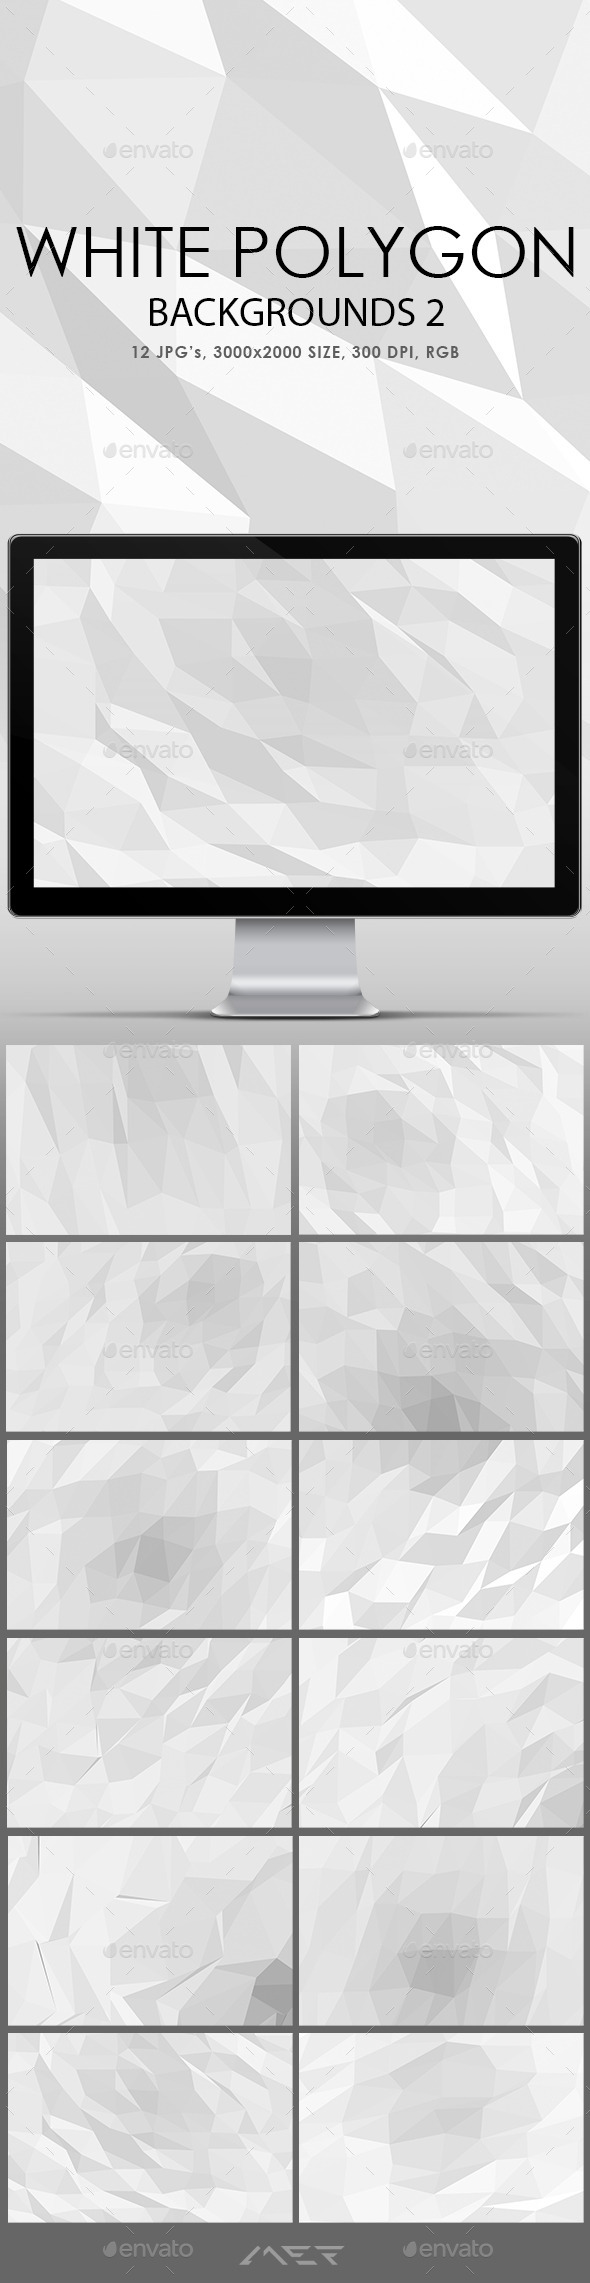 White Polygonal Backgrounds 2 - Abstract Backgrounds